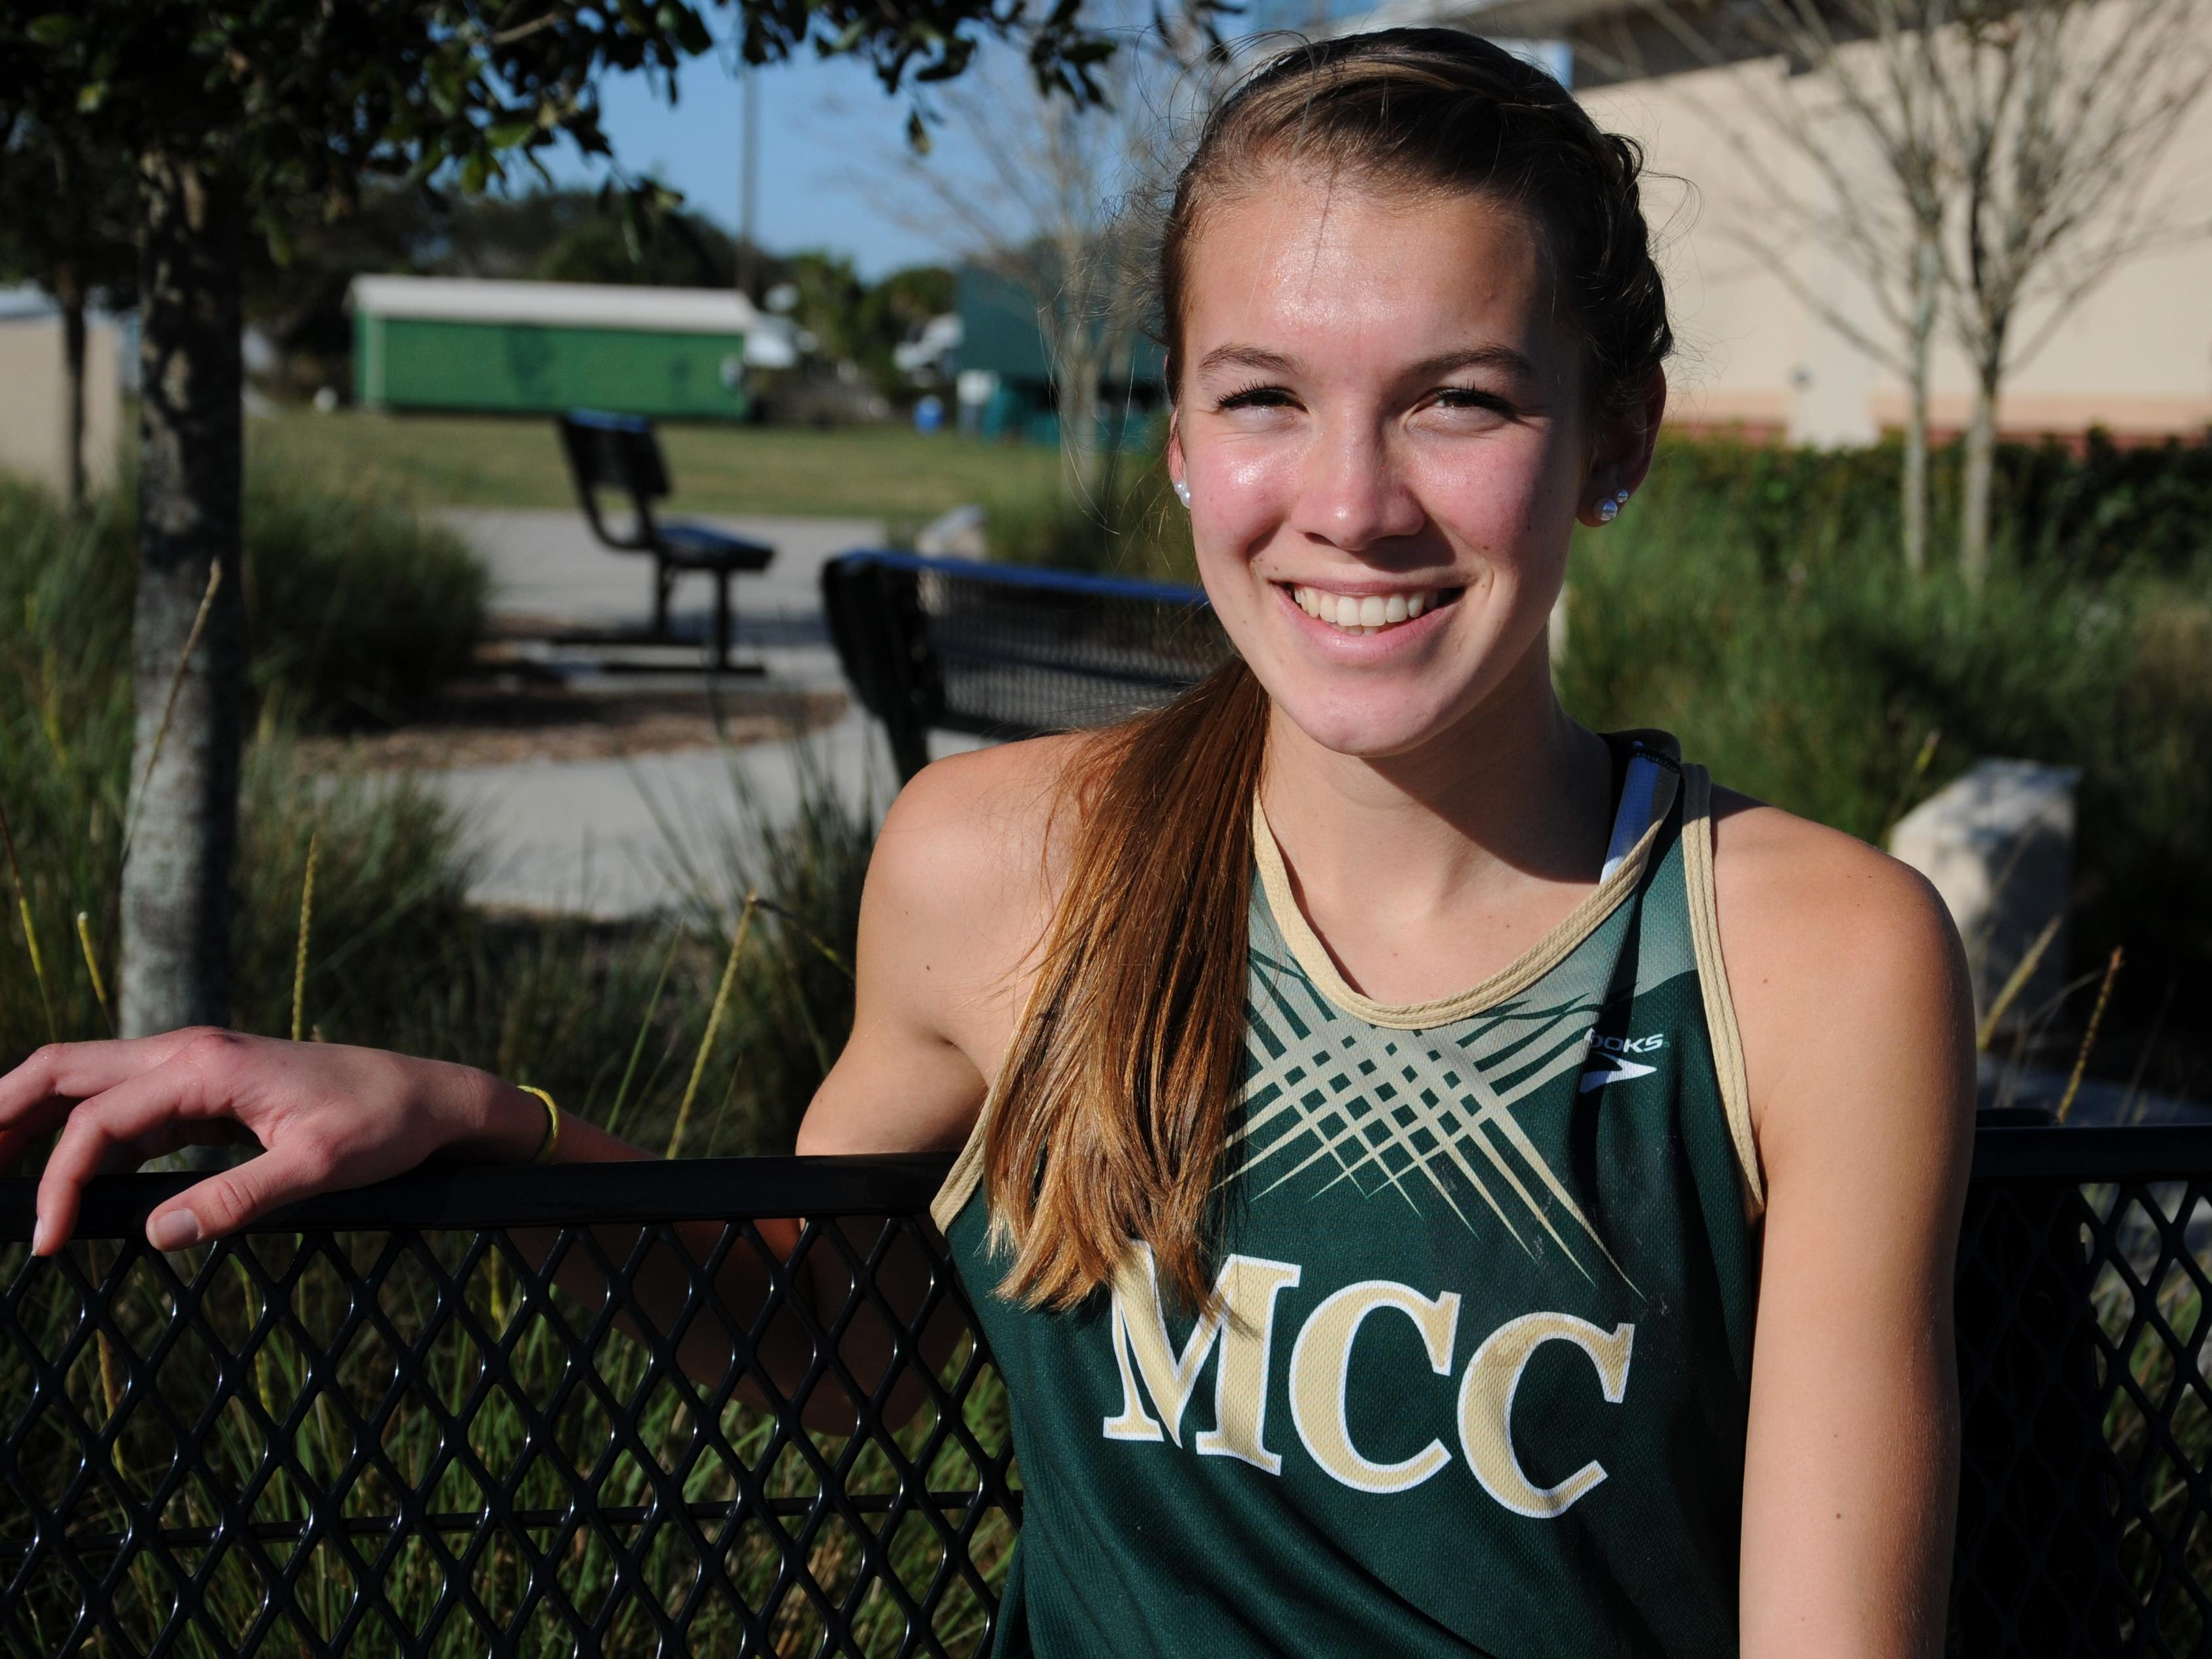 Amanda Beach of Melbourne Central Catholic is FLORIDA TODAY's Athlete of the Week for Oct. 10-16.